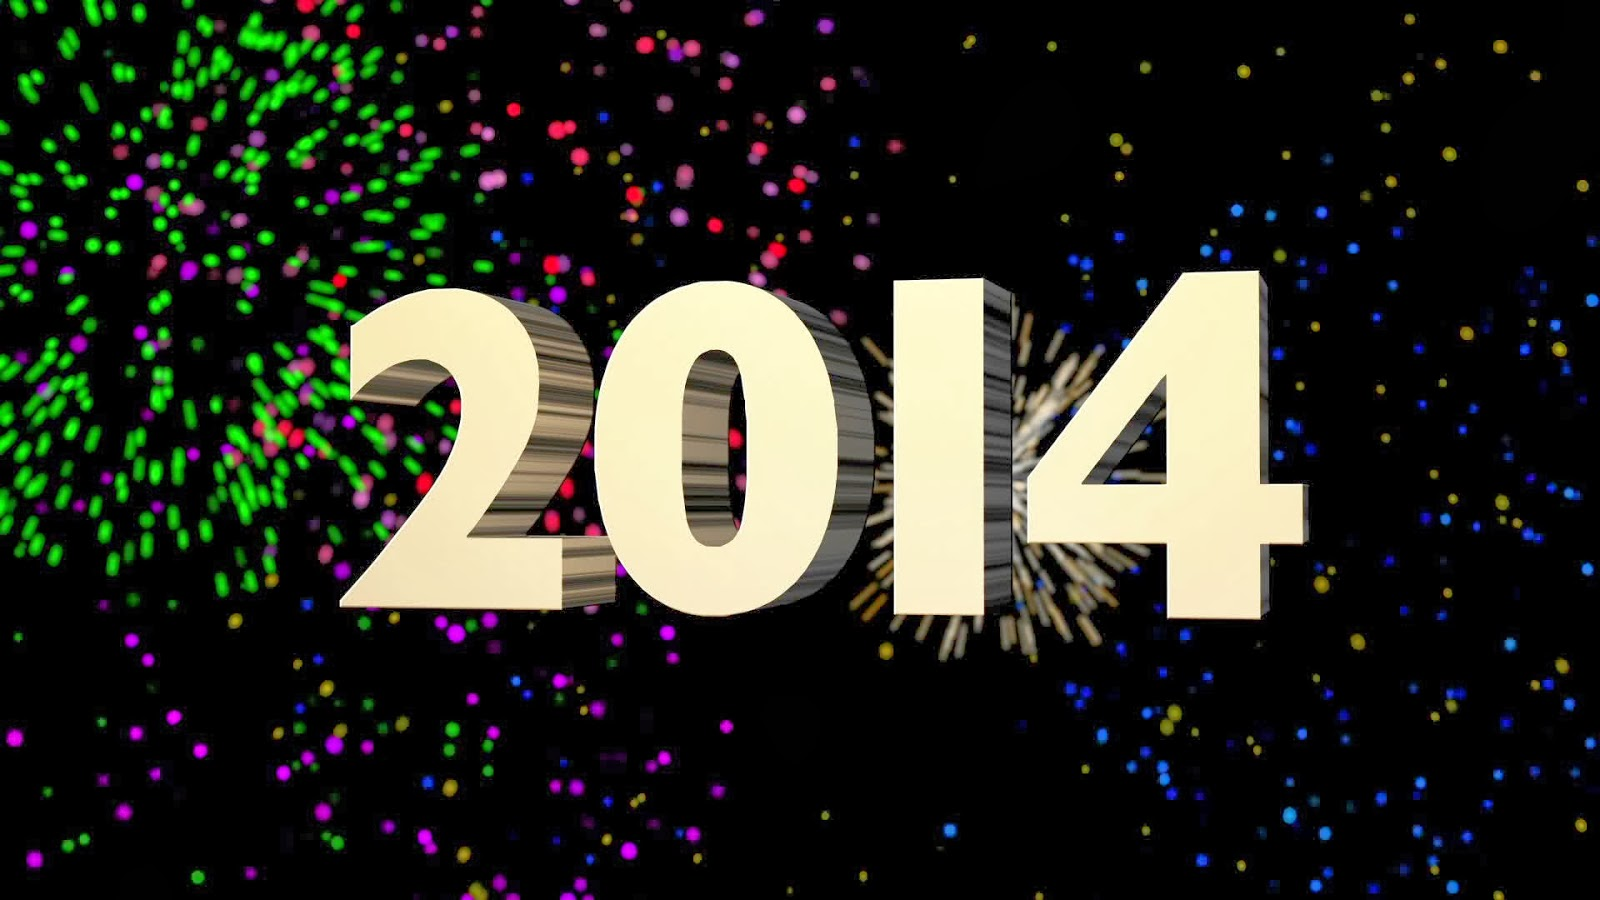 Happy New Year 2014 Wallpaper Hd Download For Free